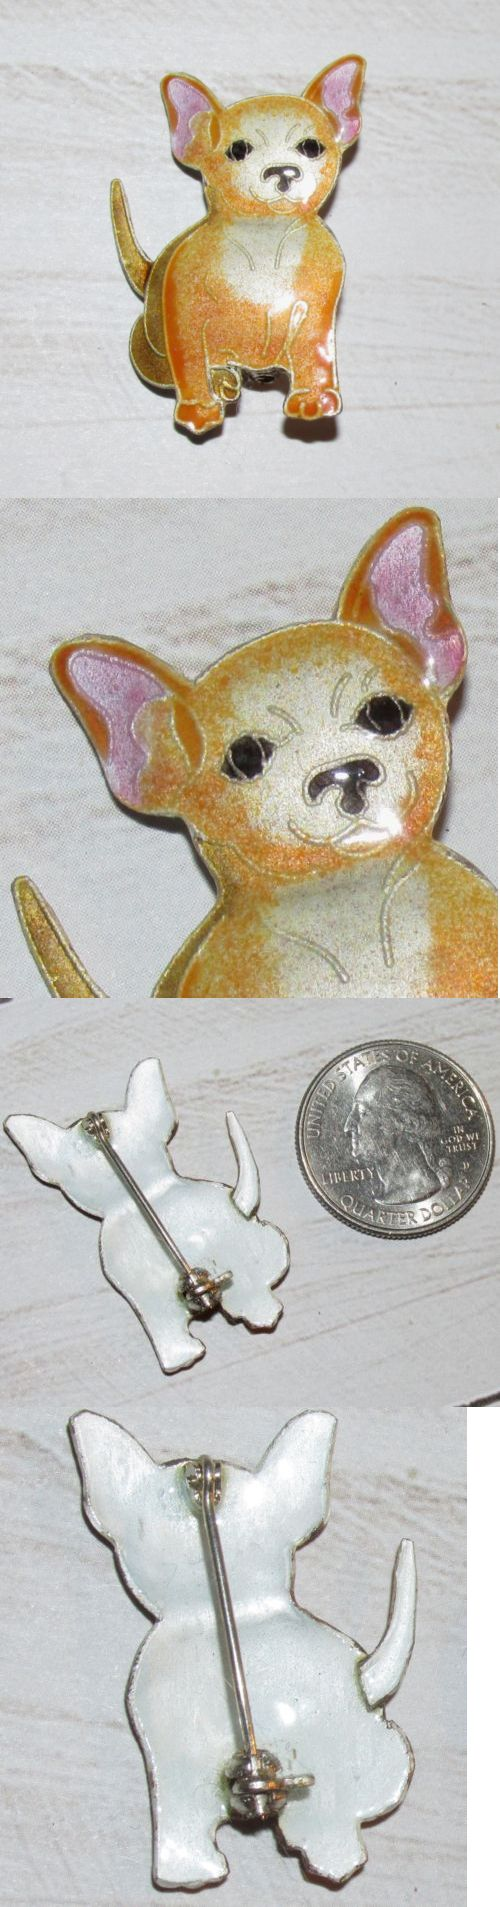 Precious Metal without Stones 164336: Chihuahua Tan Fawn Dog Puppy Sterling Silver Enamel Pin Brooch 1 3/8H Zarah New BUY IT NOW ONLY: $42.0